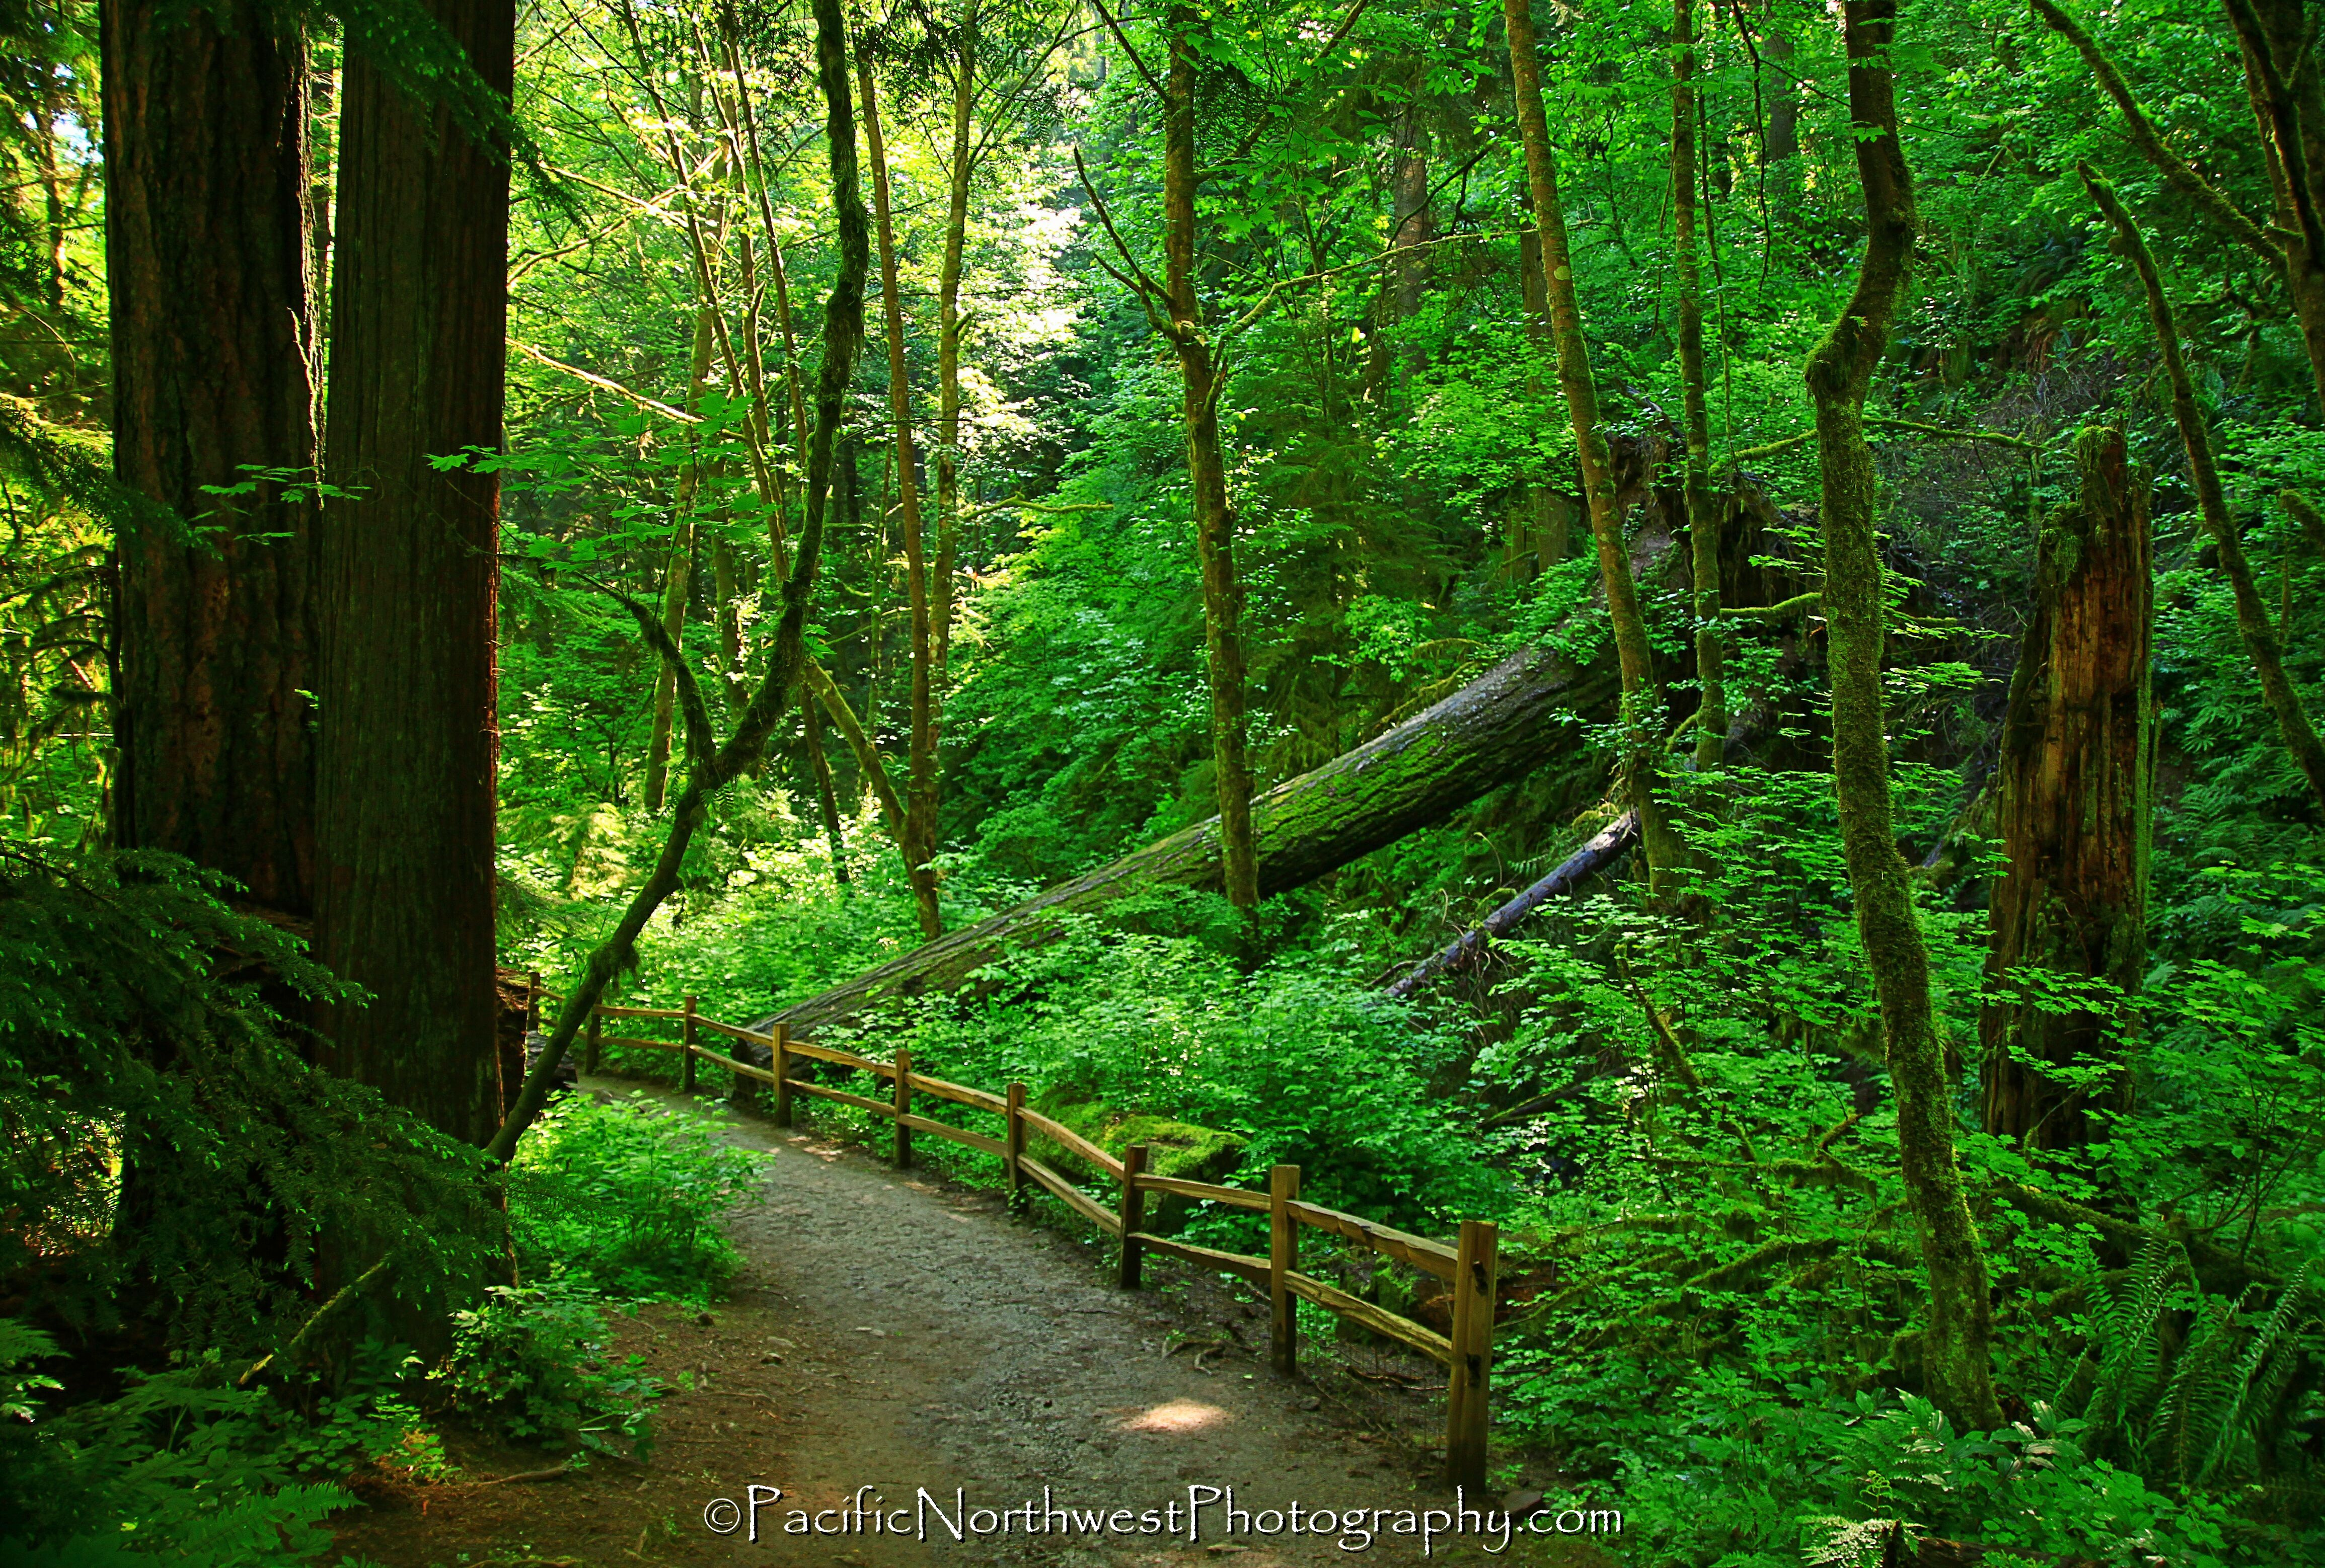 Forest Park Portland 5 170 Acre Forest Park Is The Largest City Park In The Lower 48 States Forest Park Forest Park Portland Urban Park